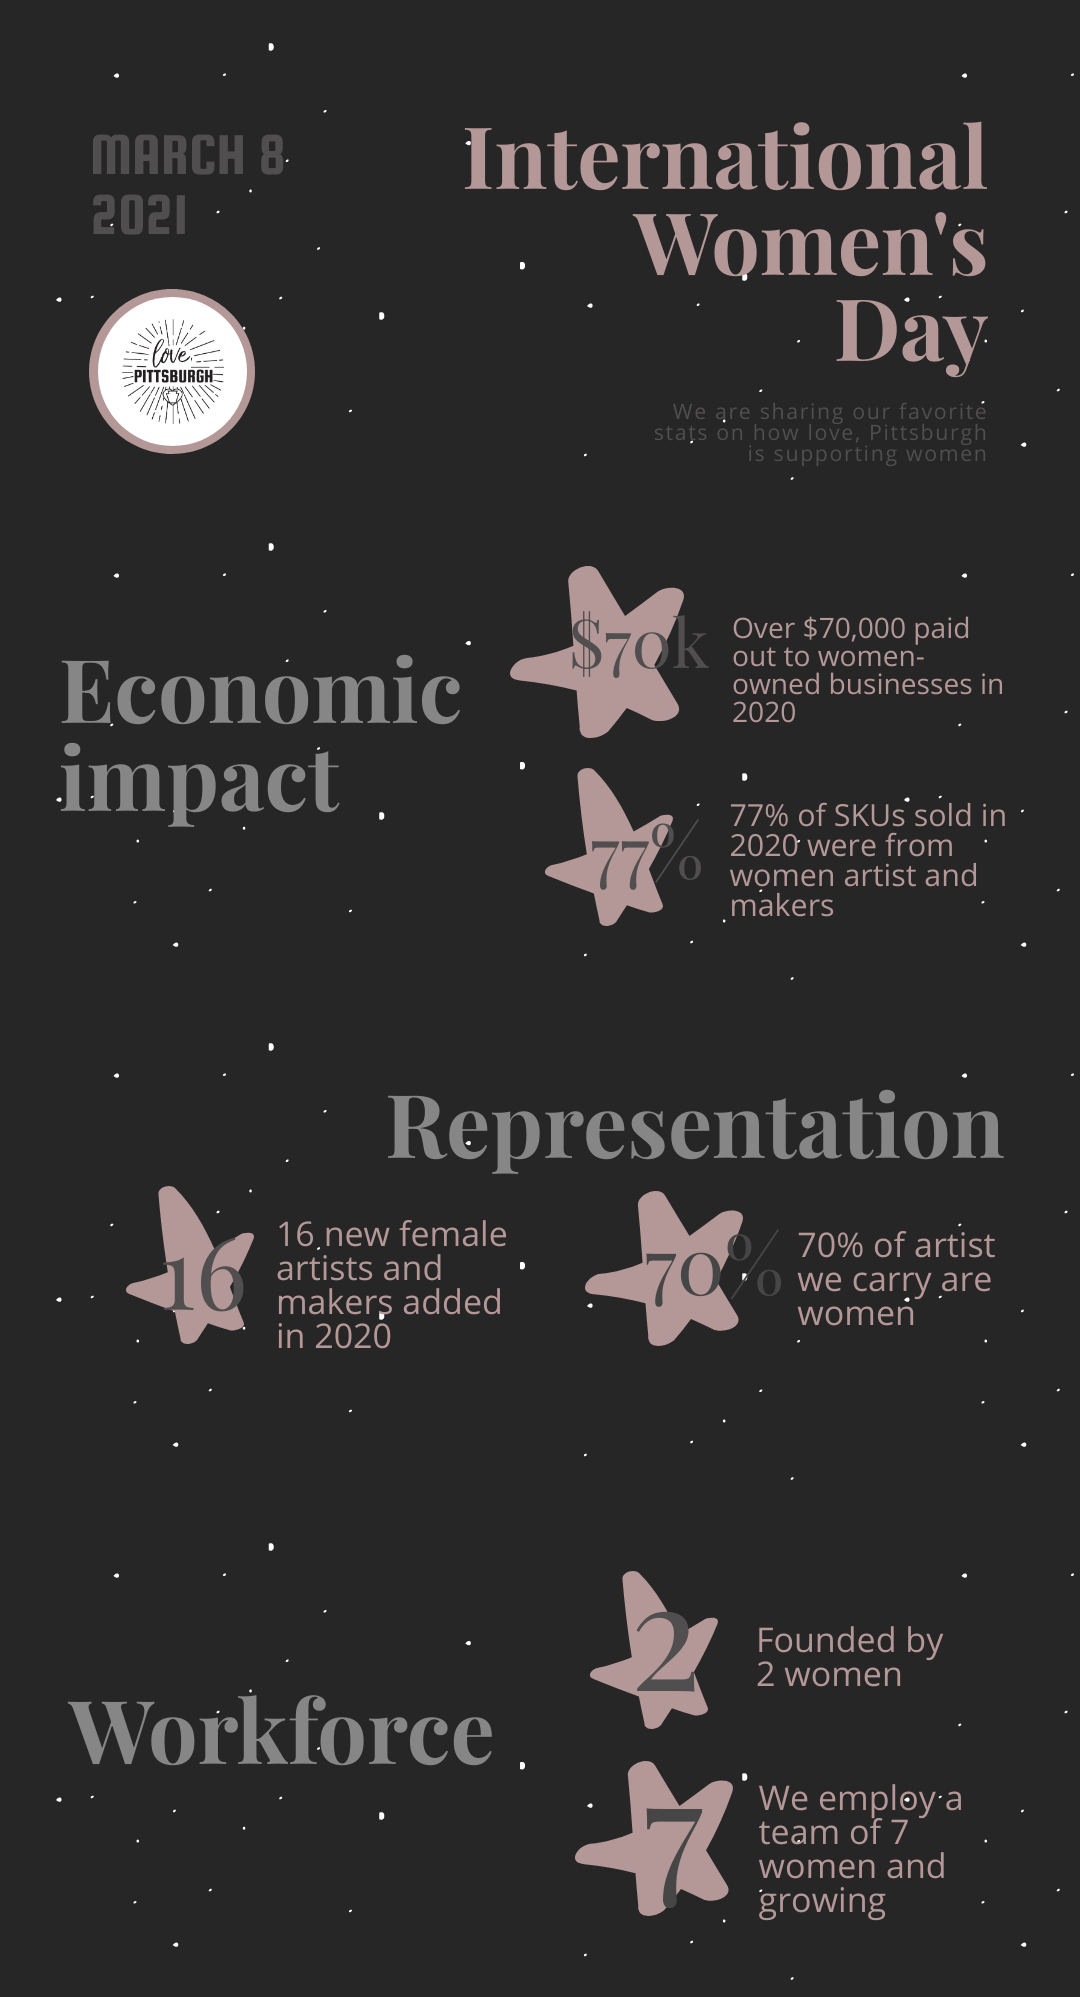 International Women's Day - Stats on how we support women